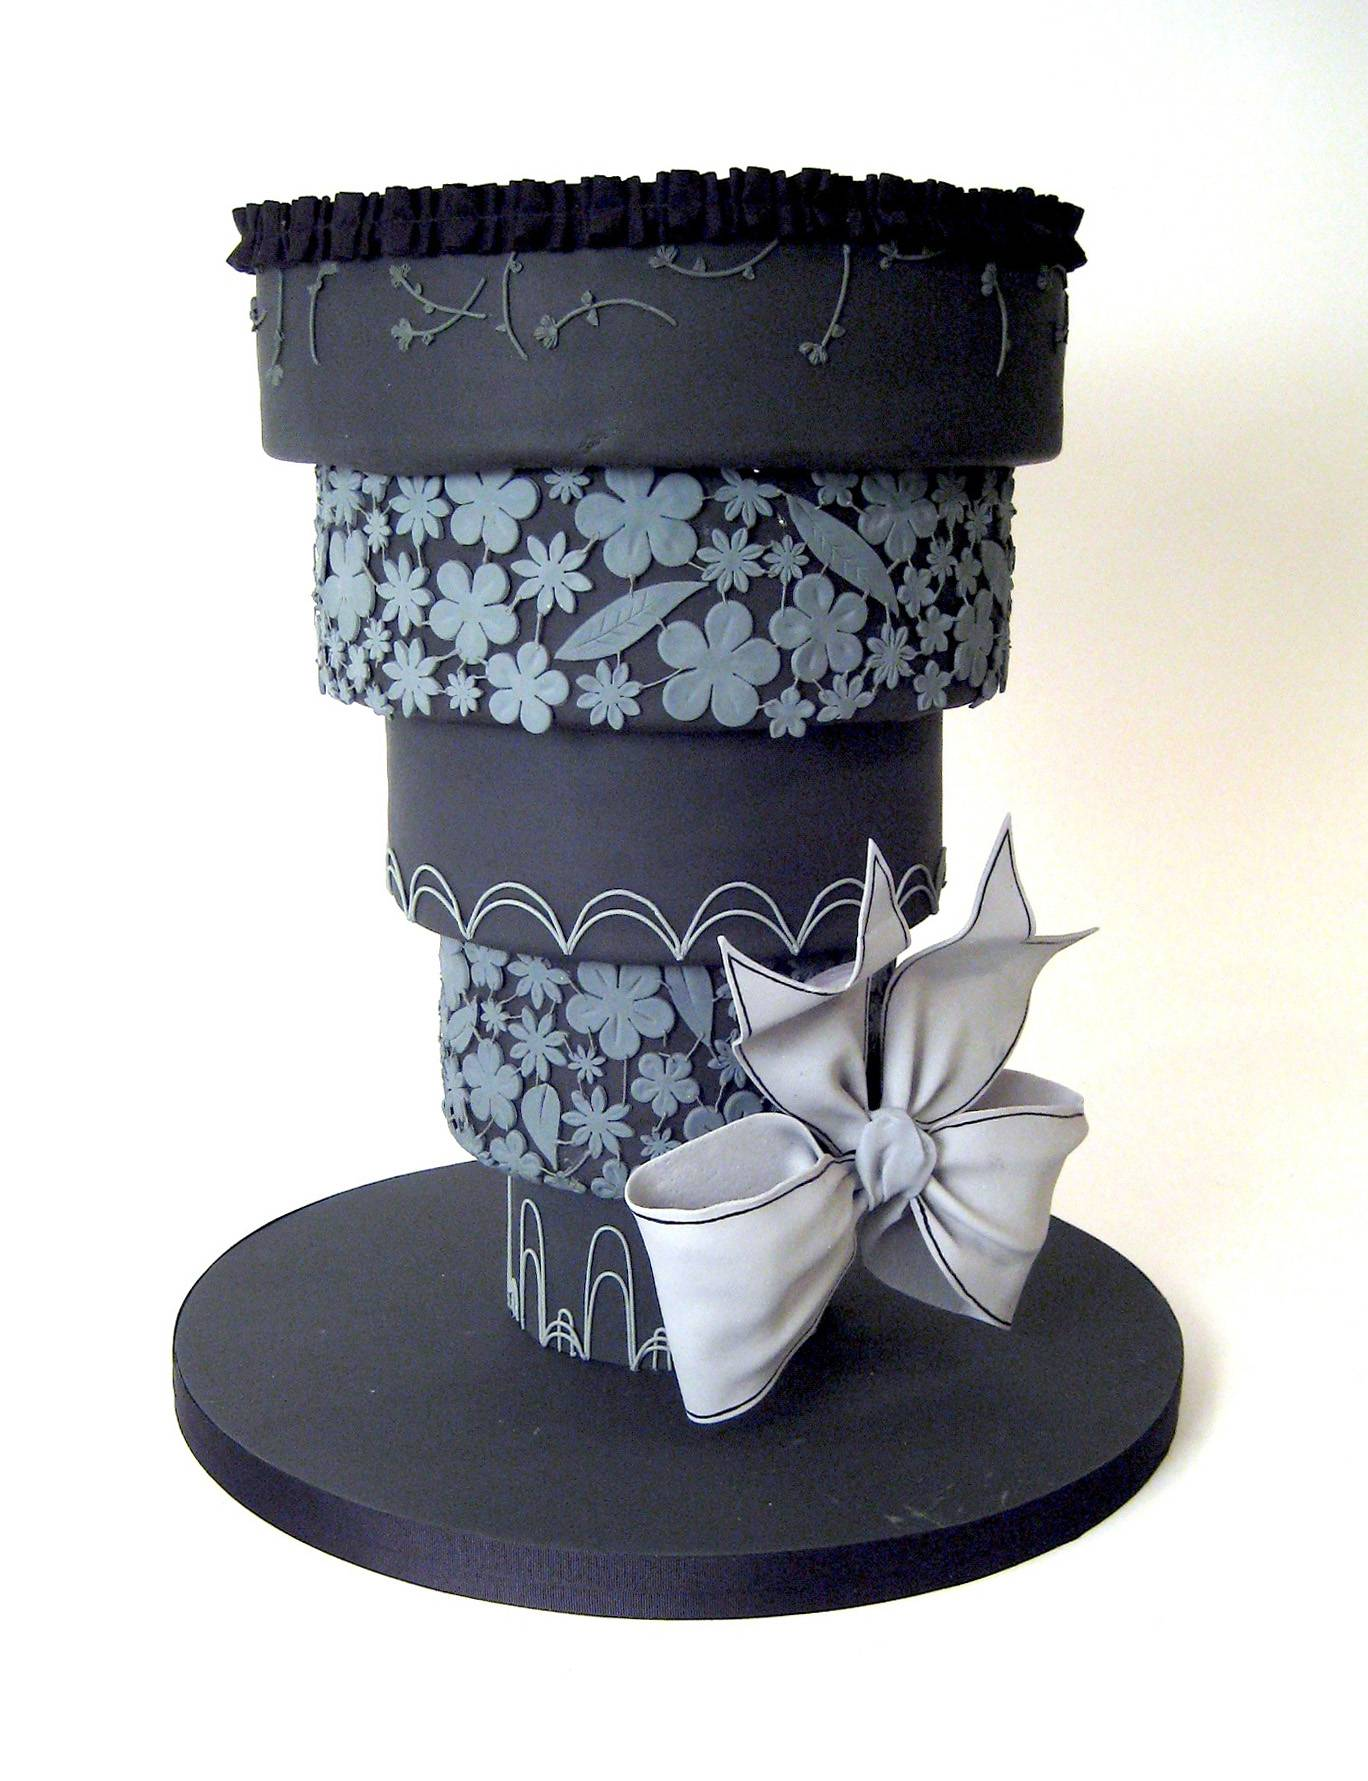 This divorce cake, an upside-down wedding cake frosted in black, was created by celebrity chef and baker Duff Goldman from Charm City Cakes in Baltimore, Md.